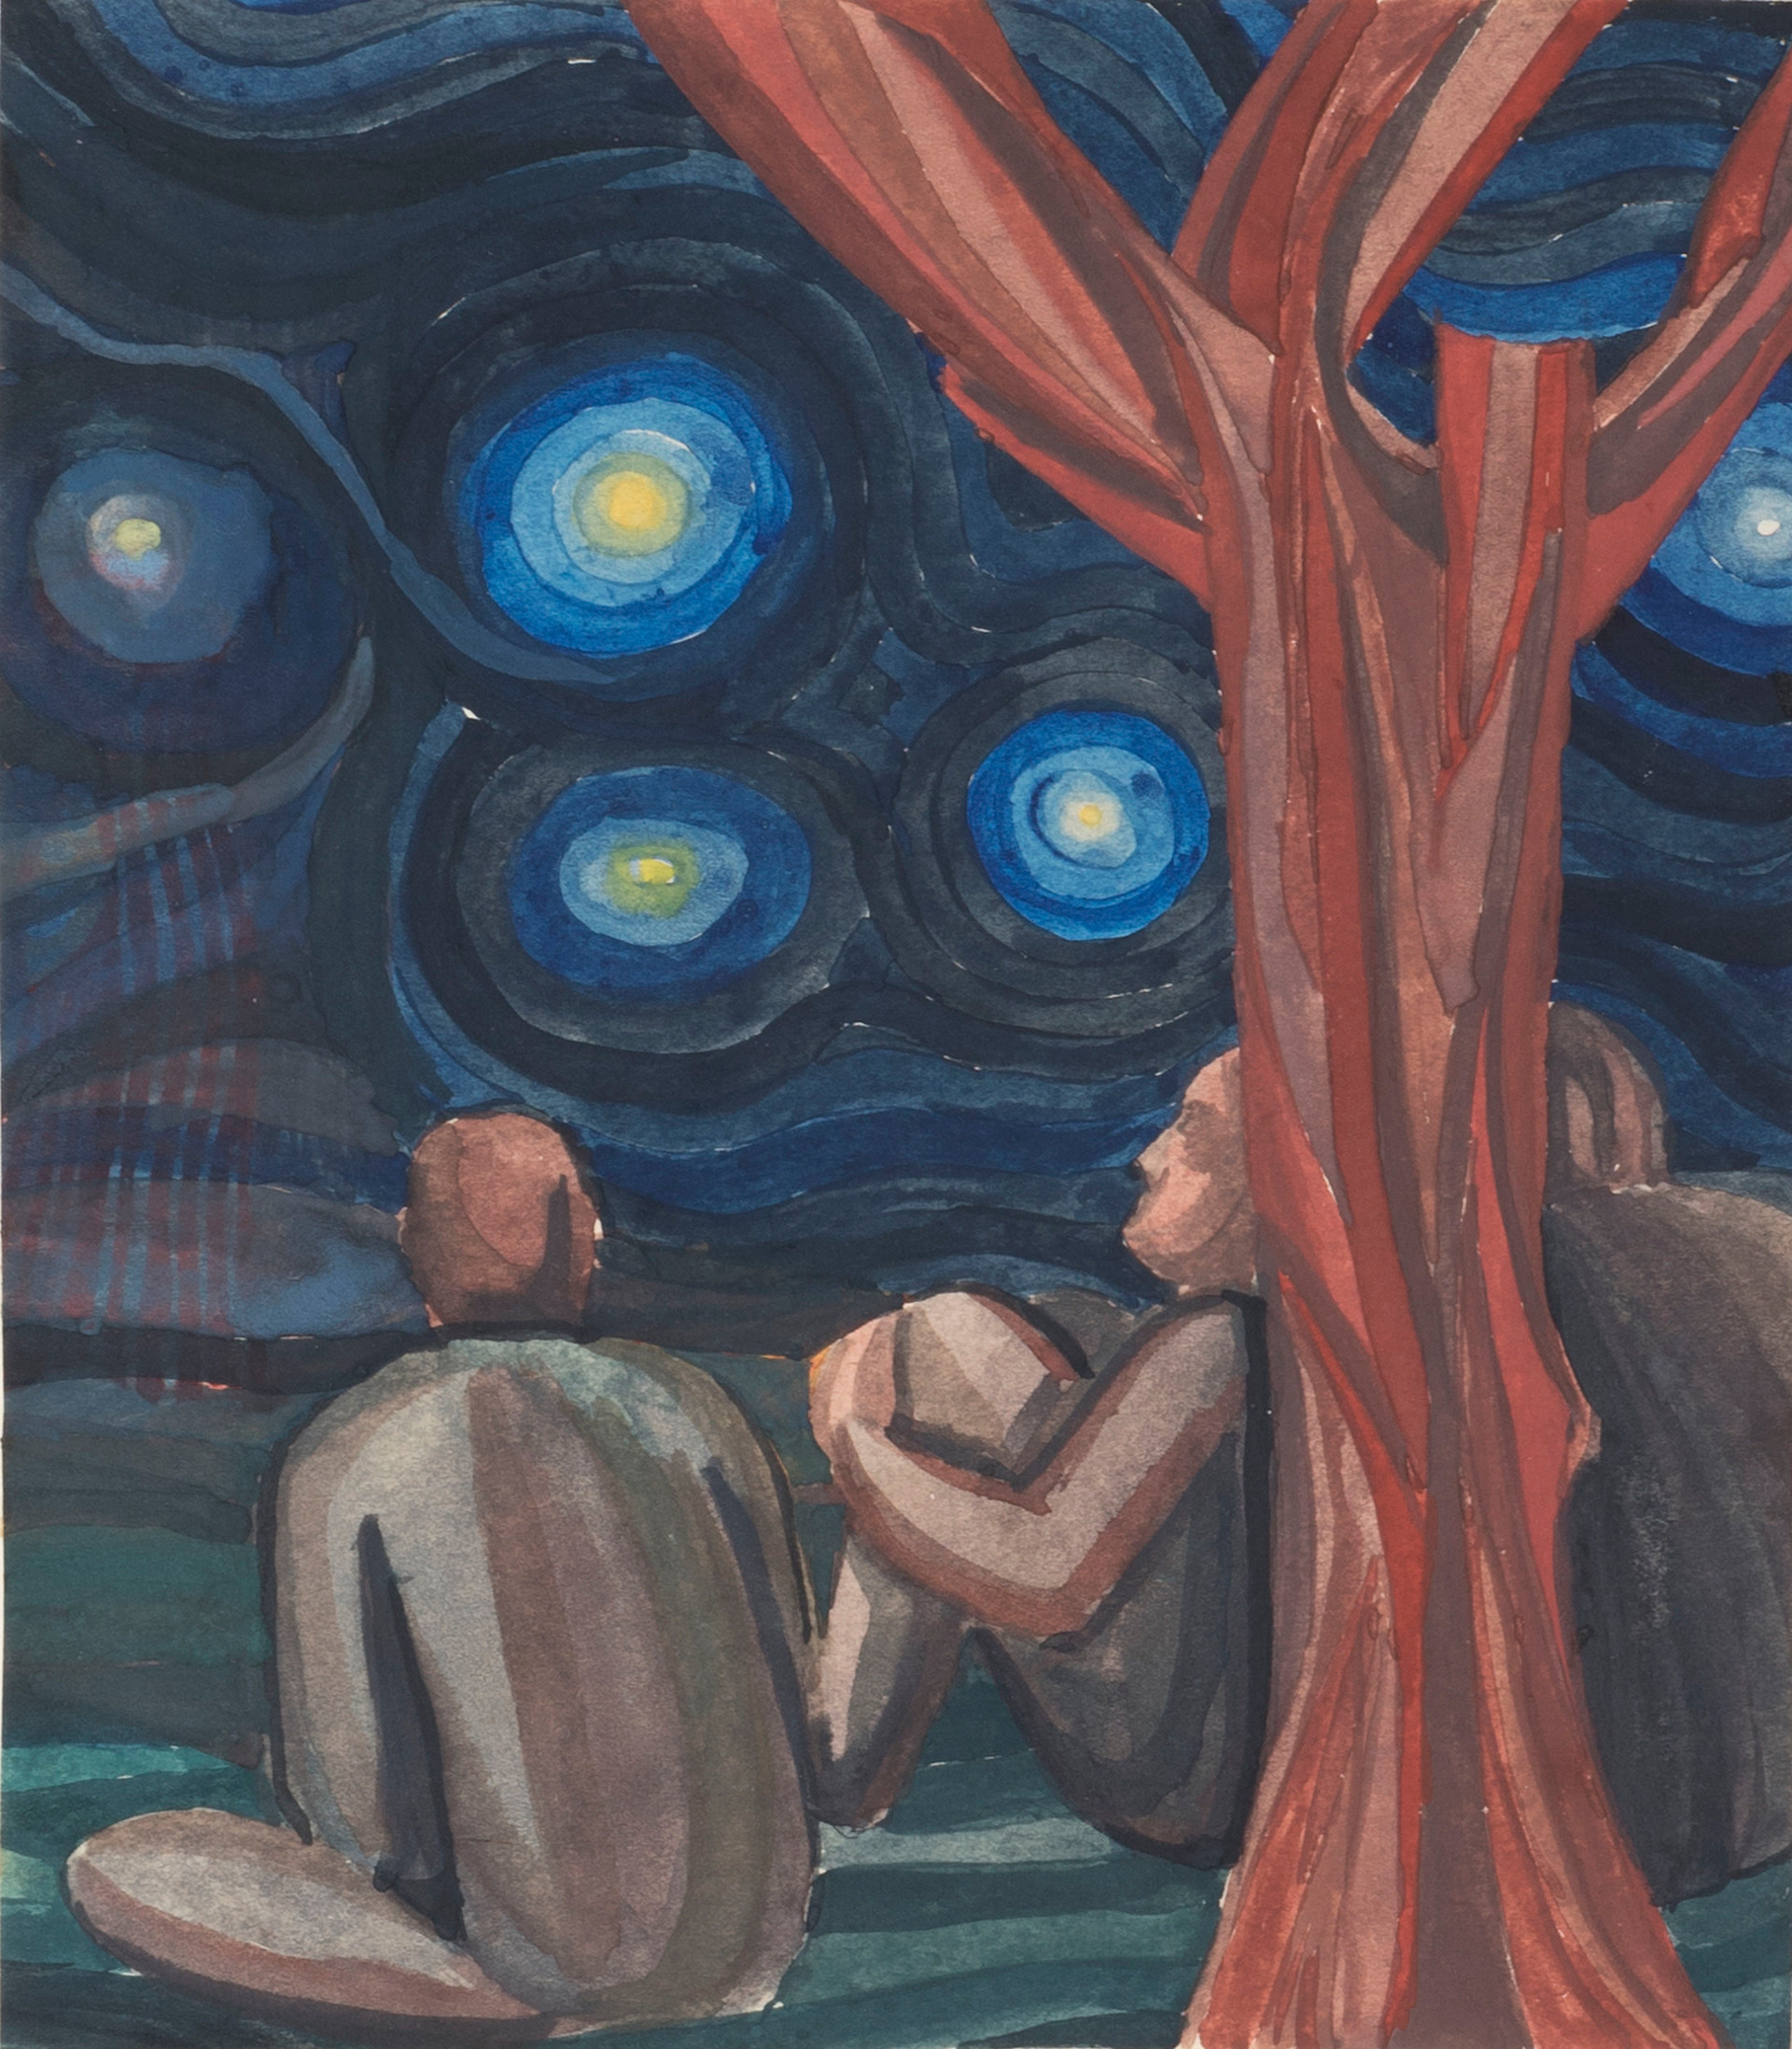 Charles Morgan: The Voyage: men sitting next to tree looking into starry sky